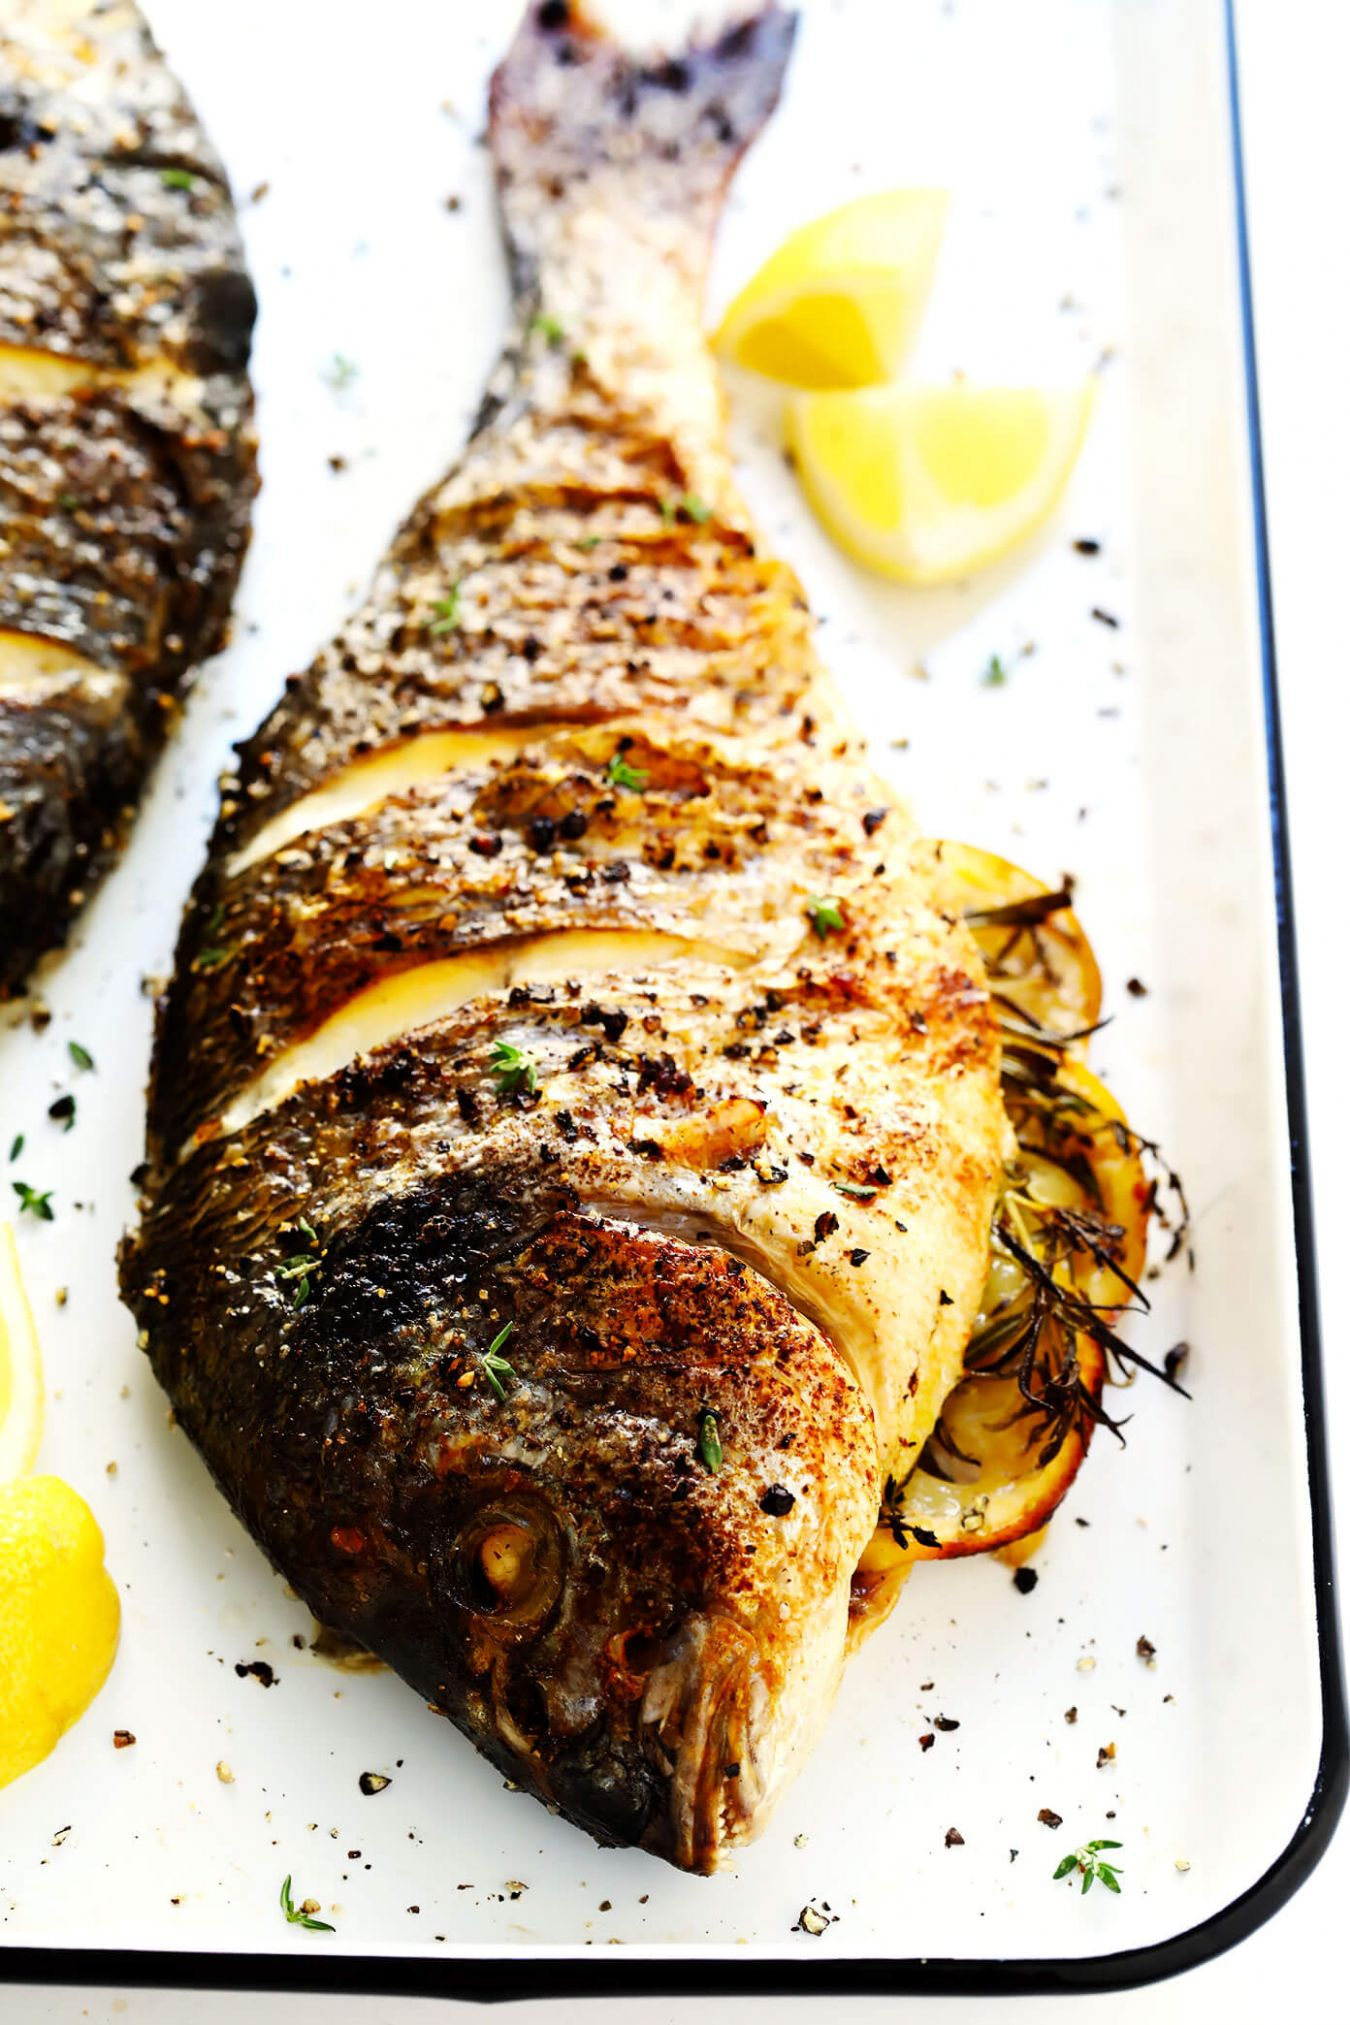 How To Cook A Whole Fish | Gimme Some Oven - Recipes Cooking Fish